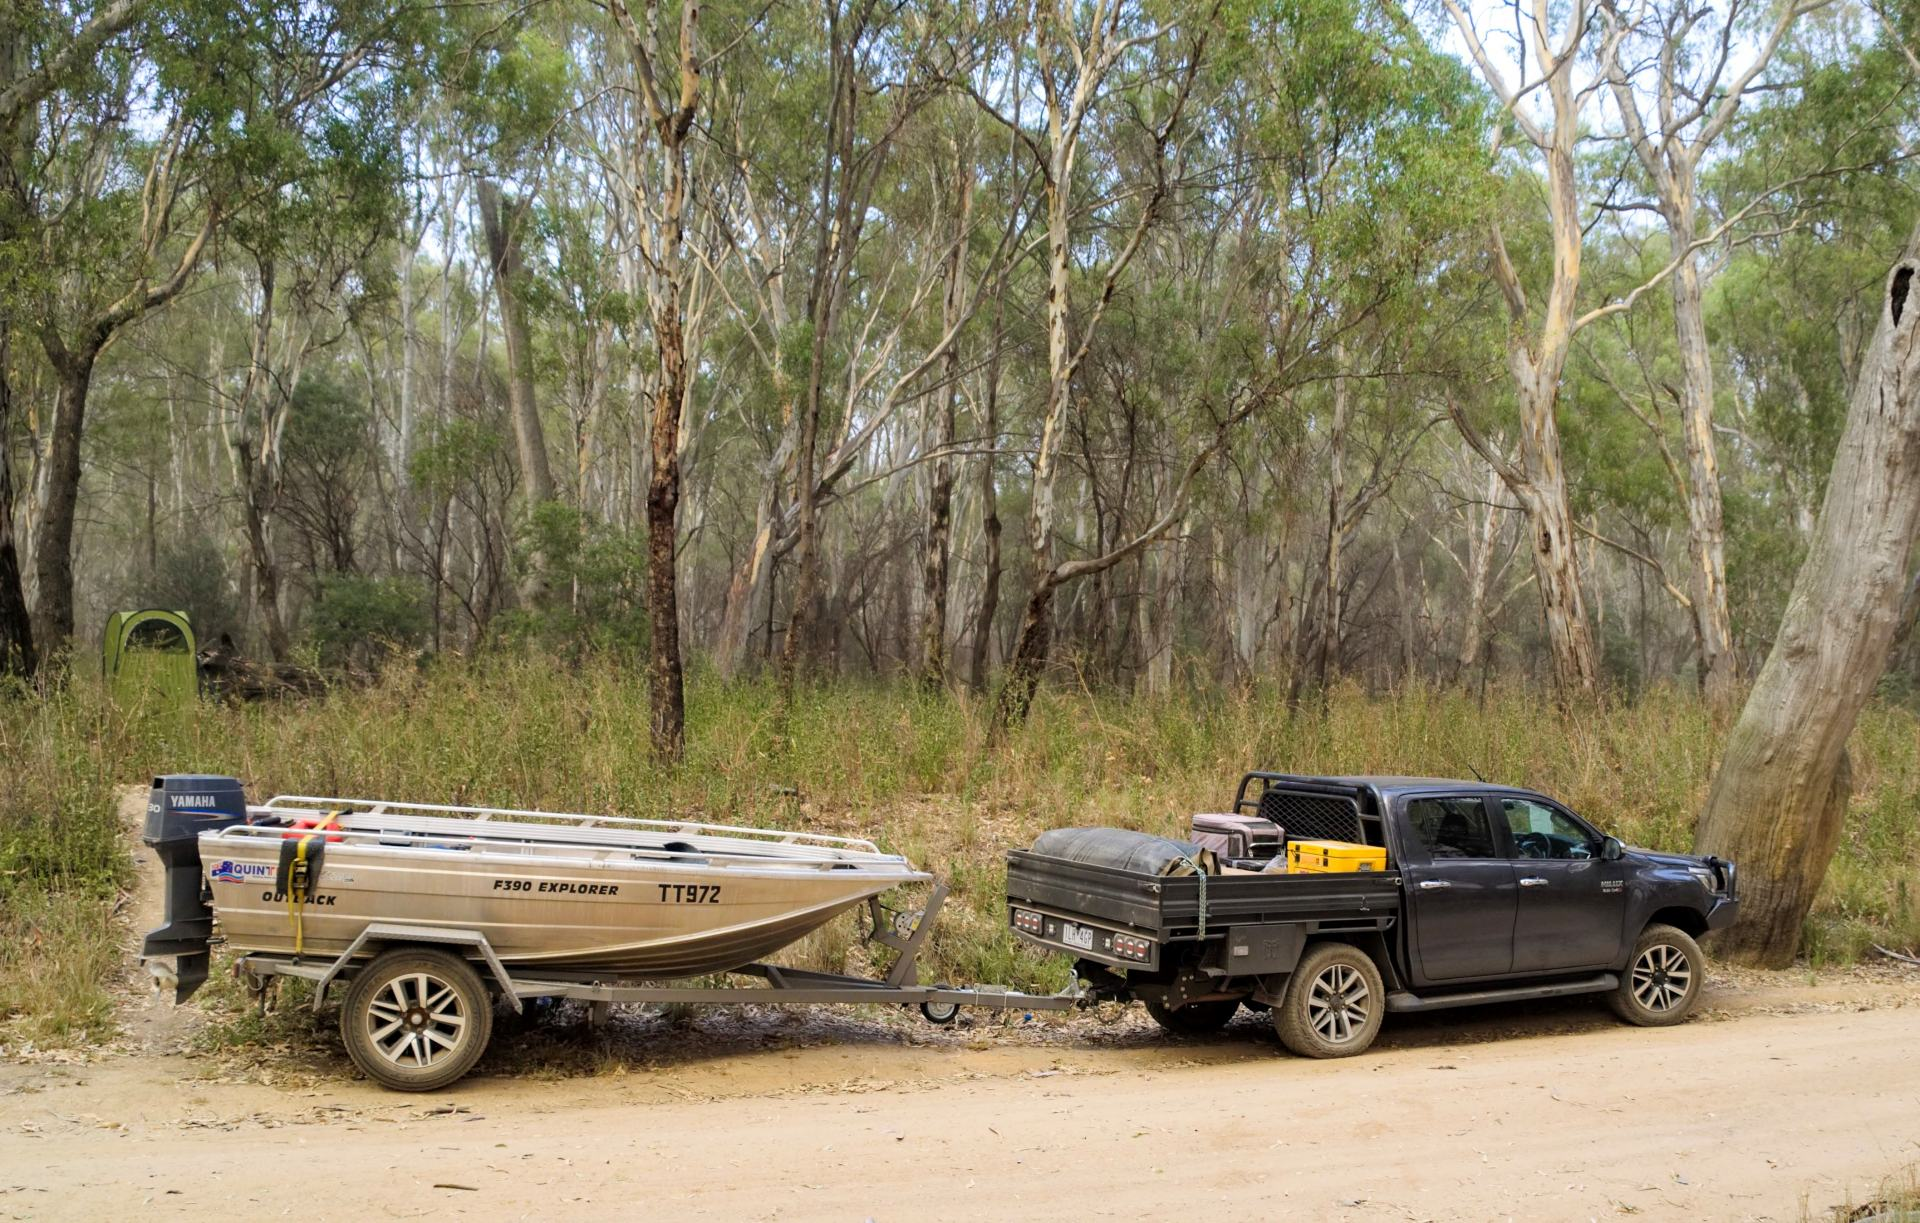 hilux and boat